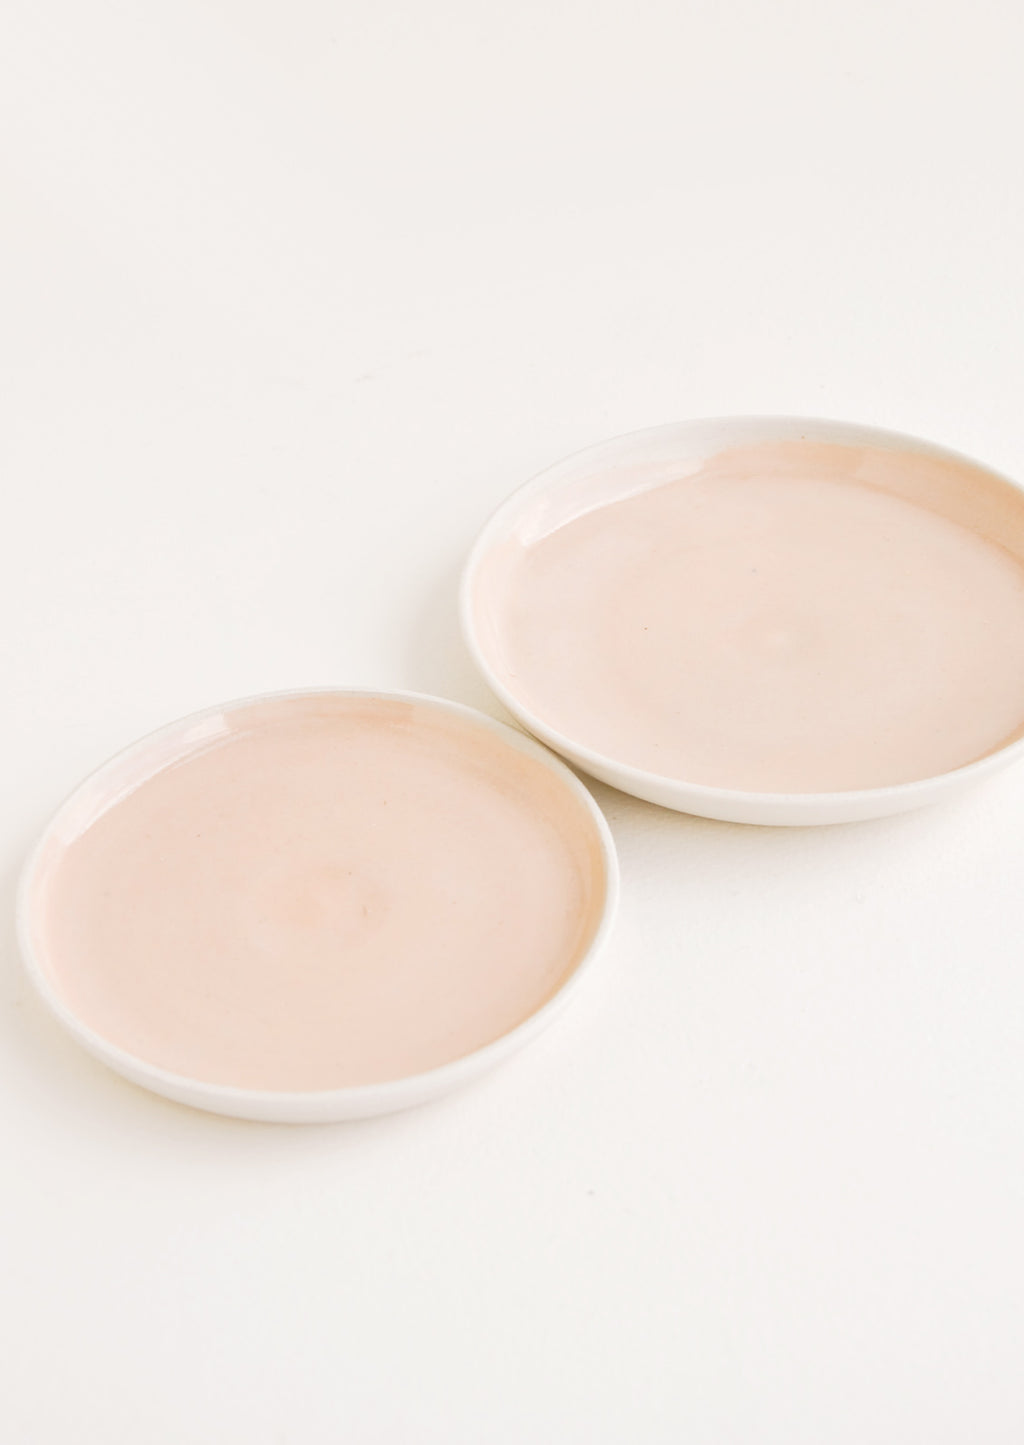 Mini / Peach: Nougat Ceramic Dish in Mini / Peach - LEIF